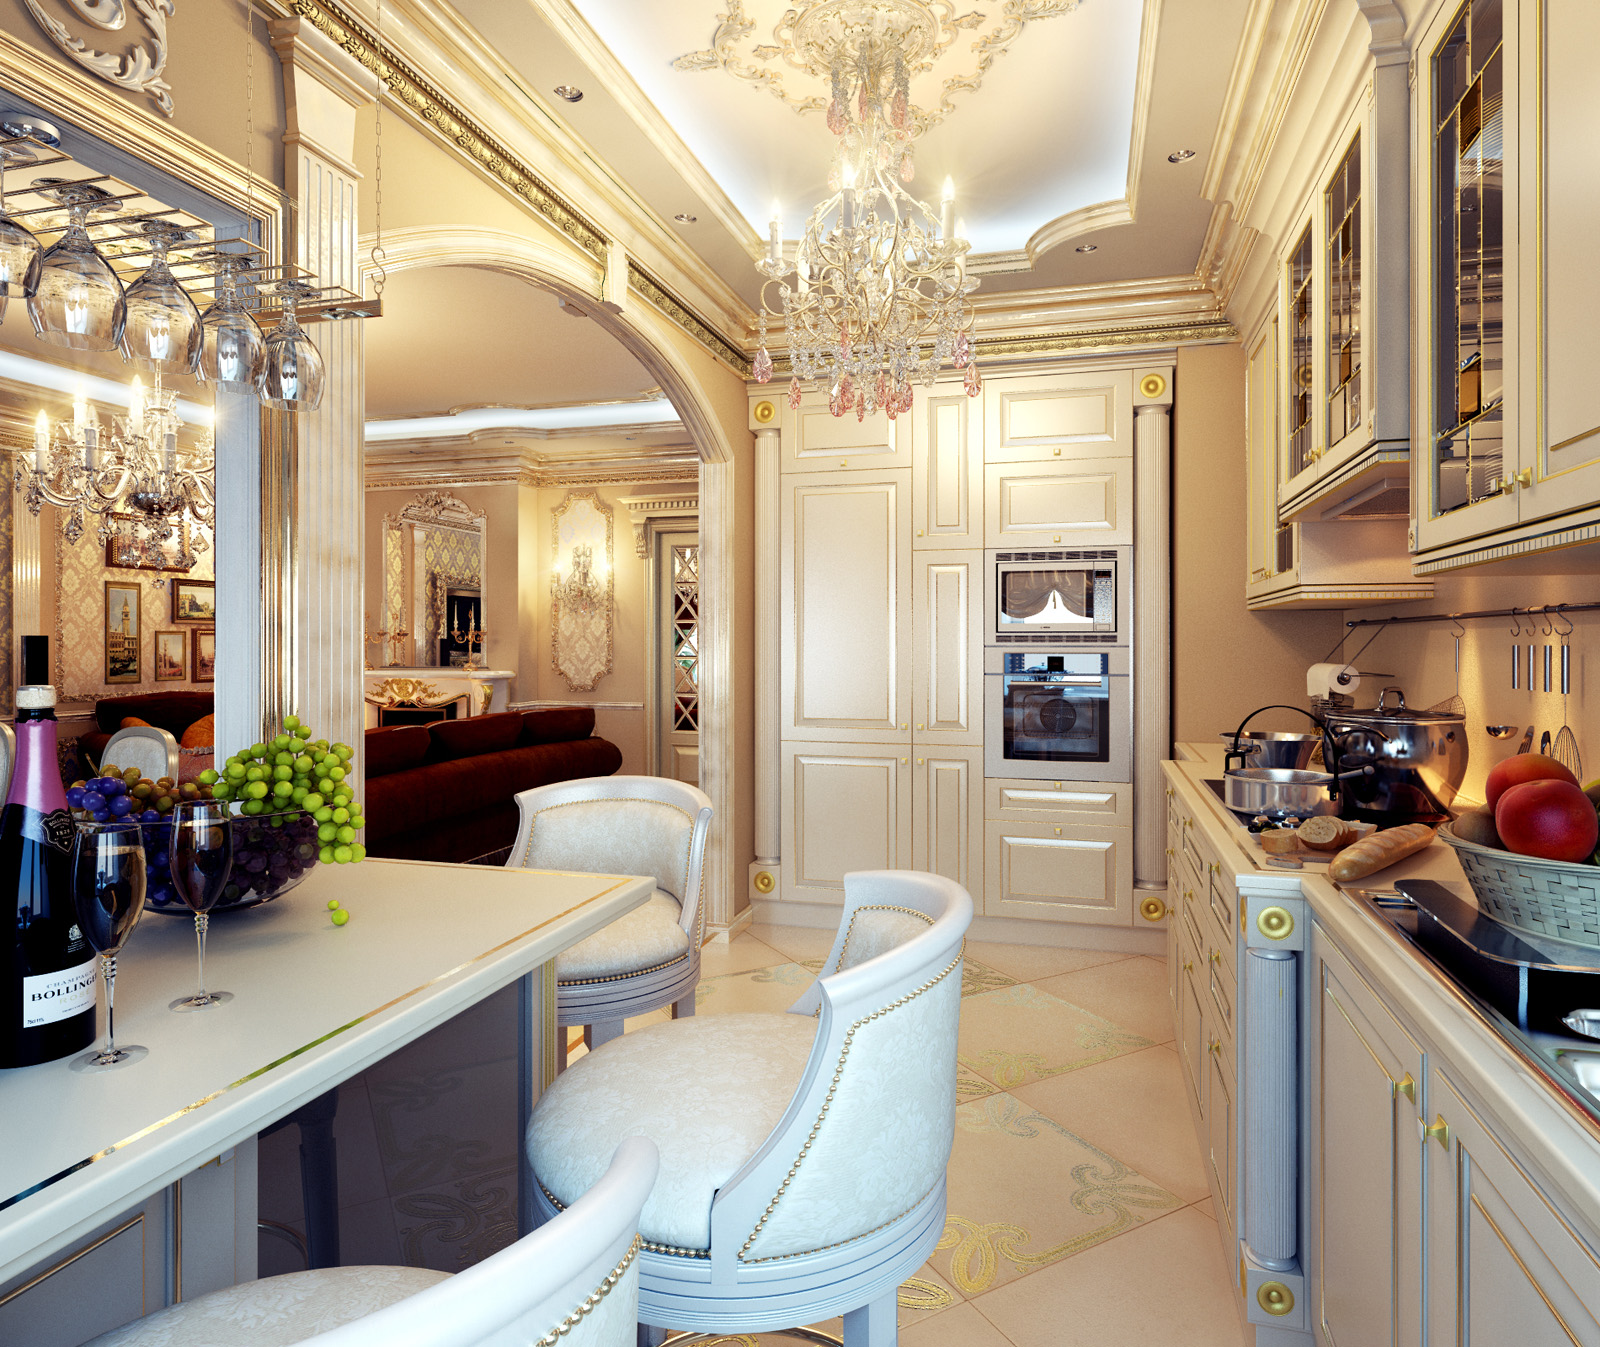 Royal Kitchen Design: Royal Home Designs !